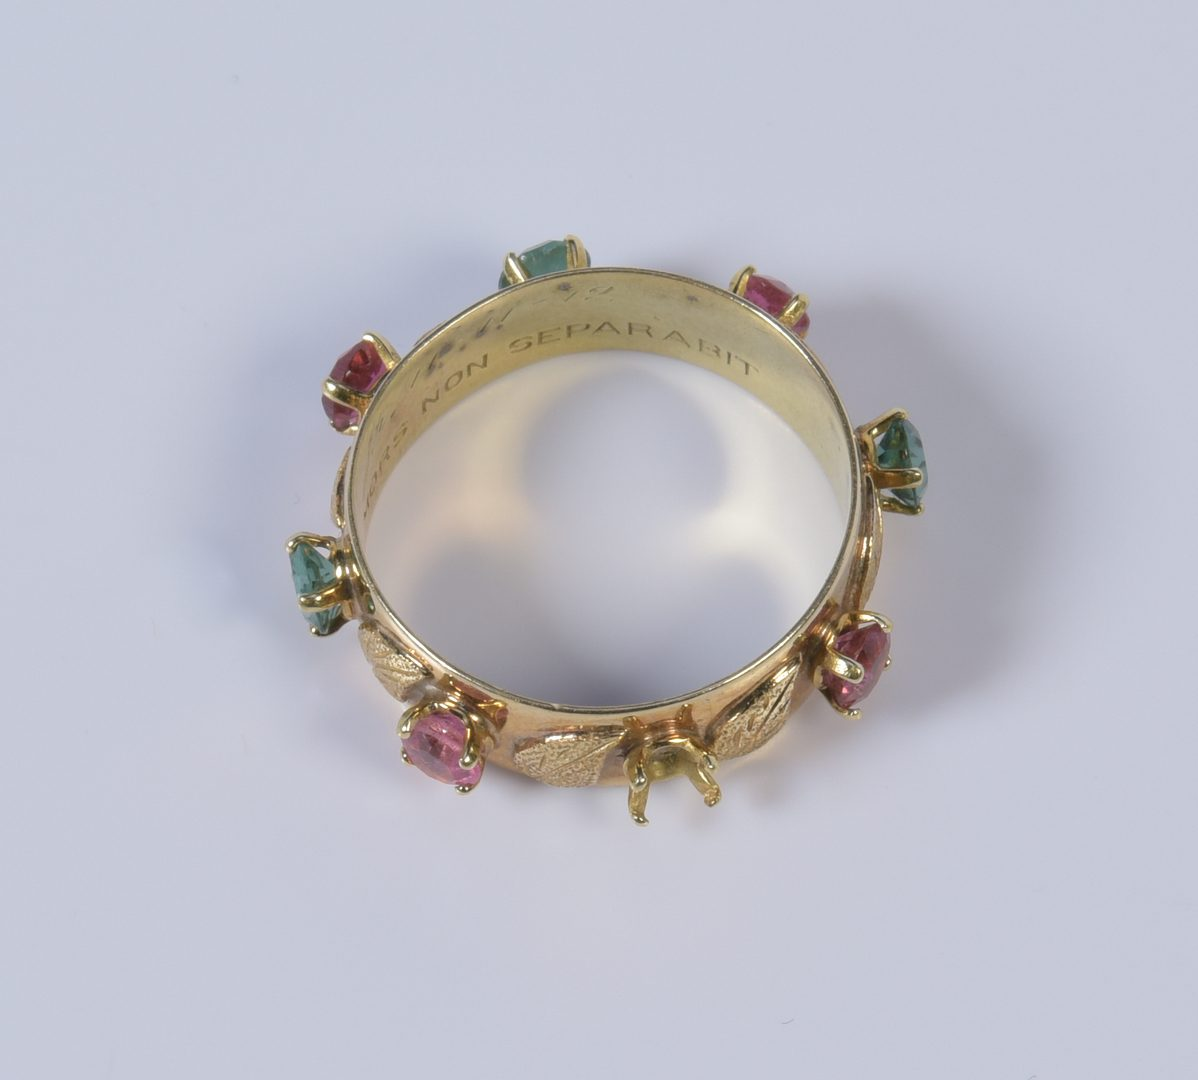 Lot 802: Group of Vintage Jewelry, 12 items